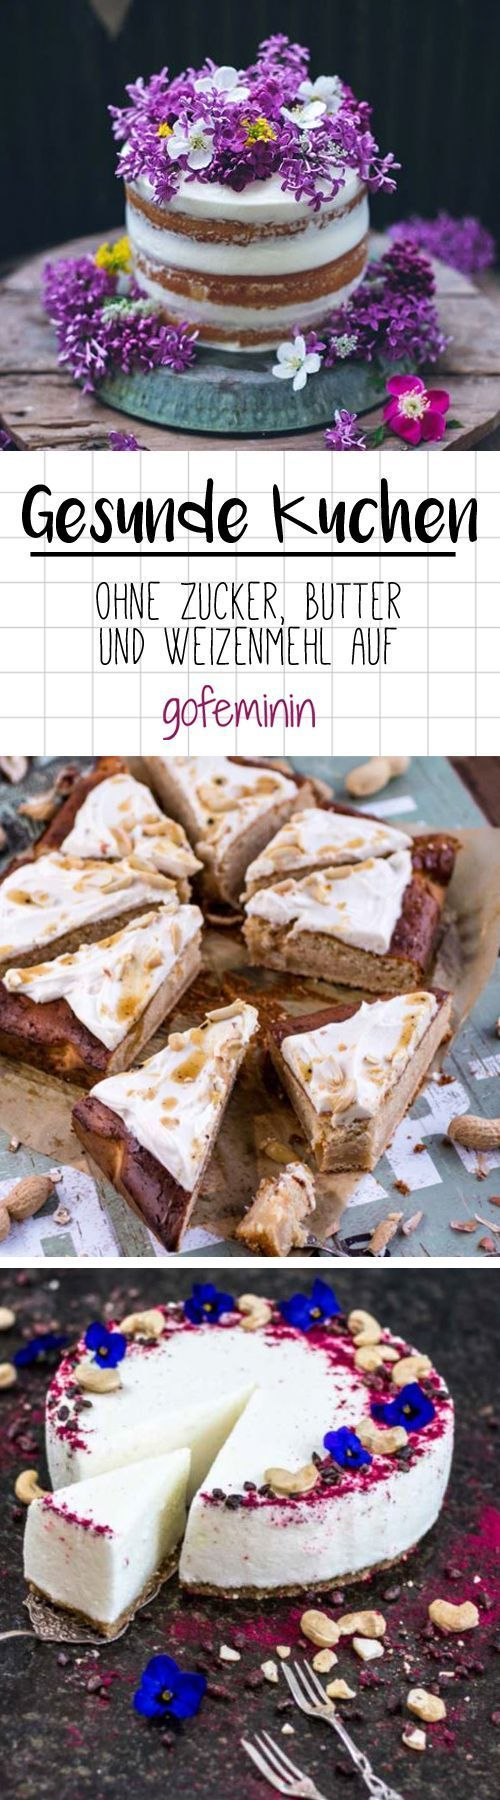 Feasting without remorse: 3 cake recipes without sugar, butter and wheat flour  - Abnehmen // Tipps // Workouts -